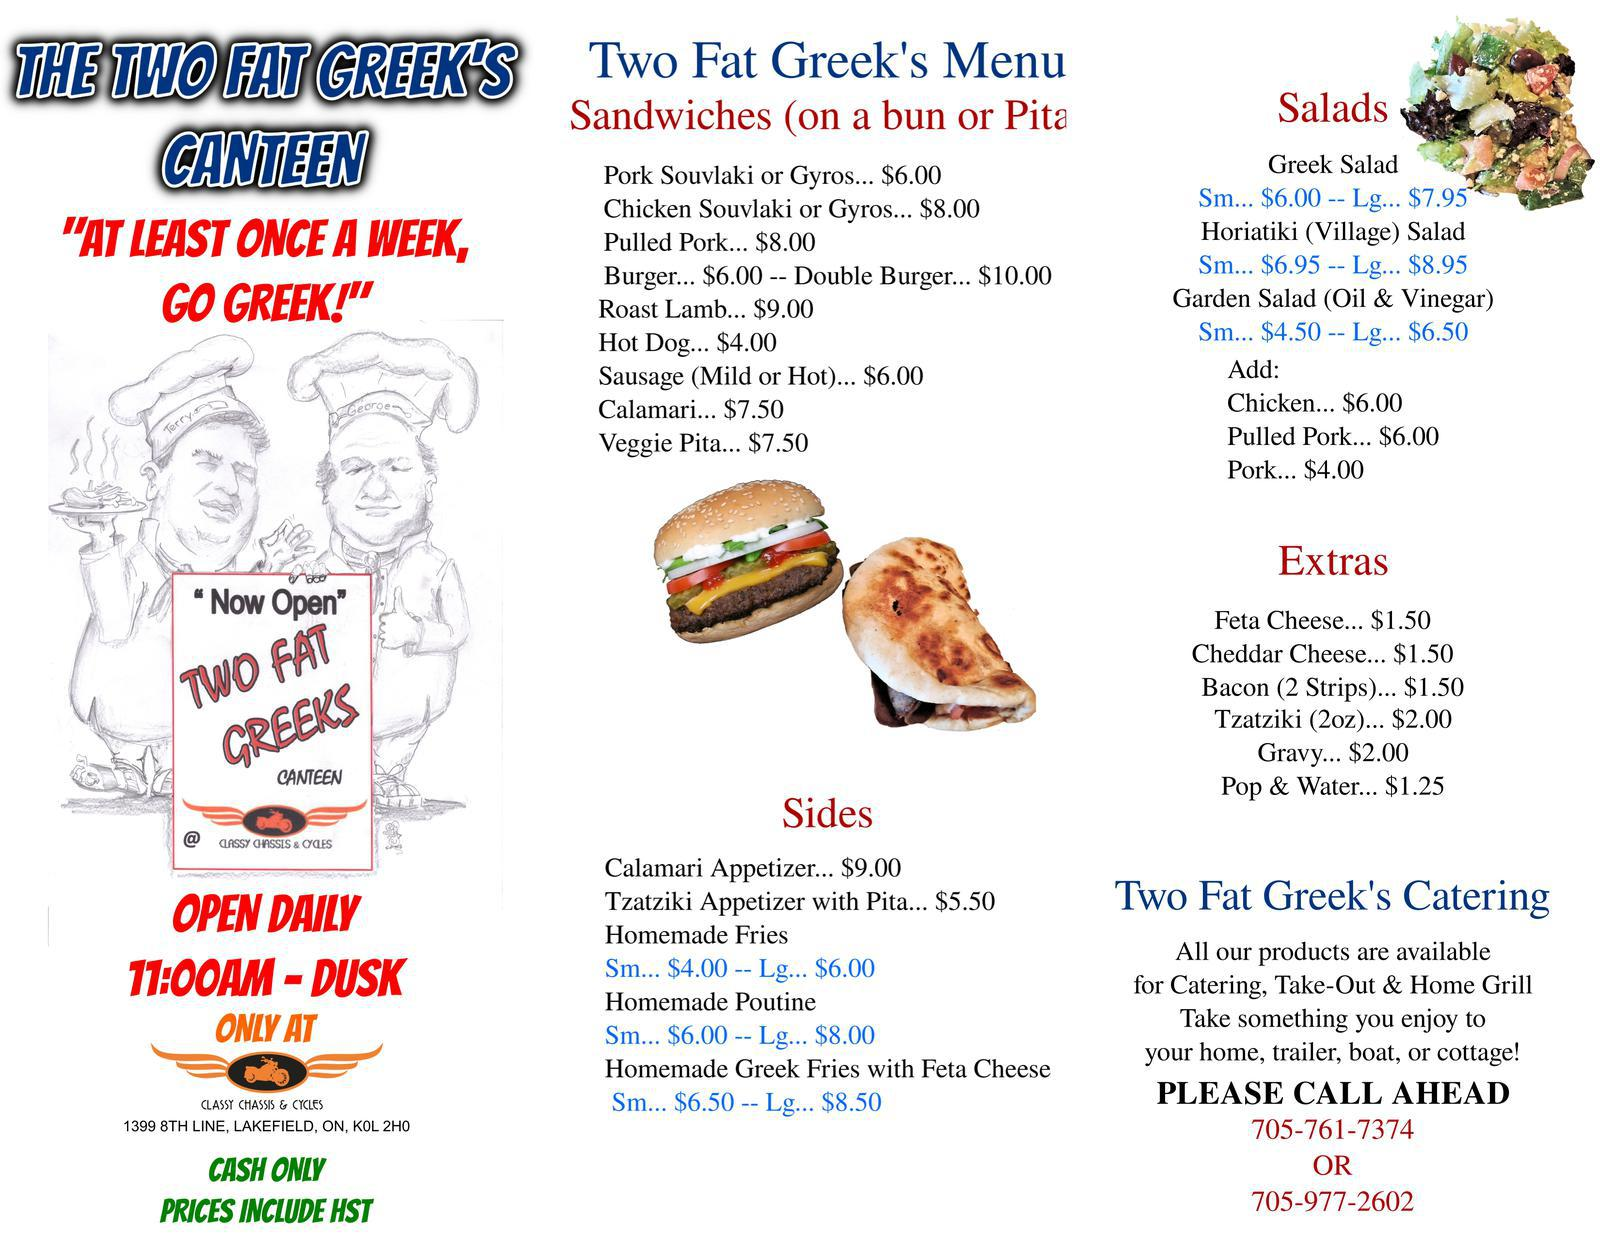 FAT GREEK MENU